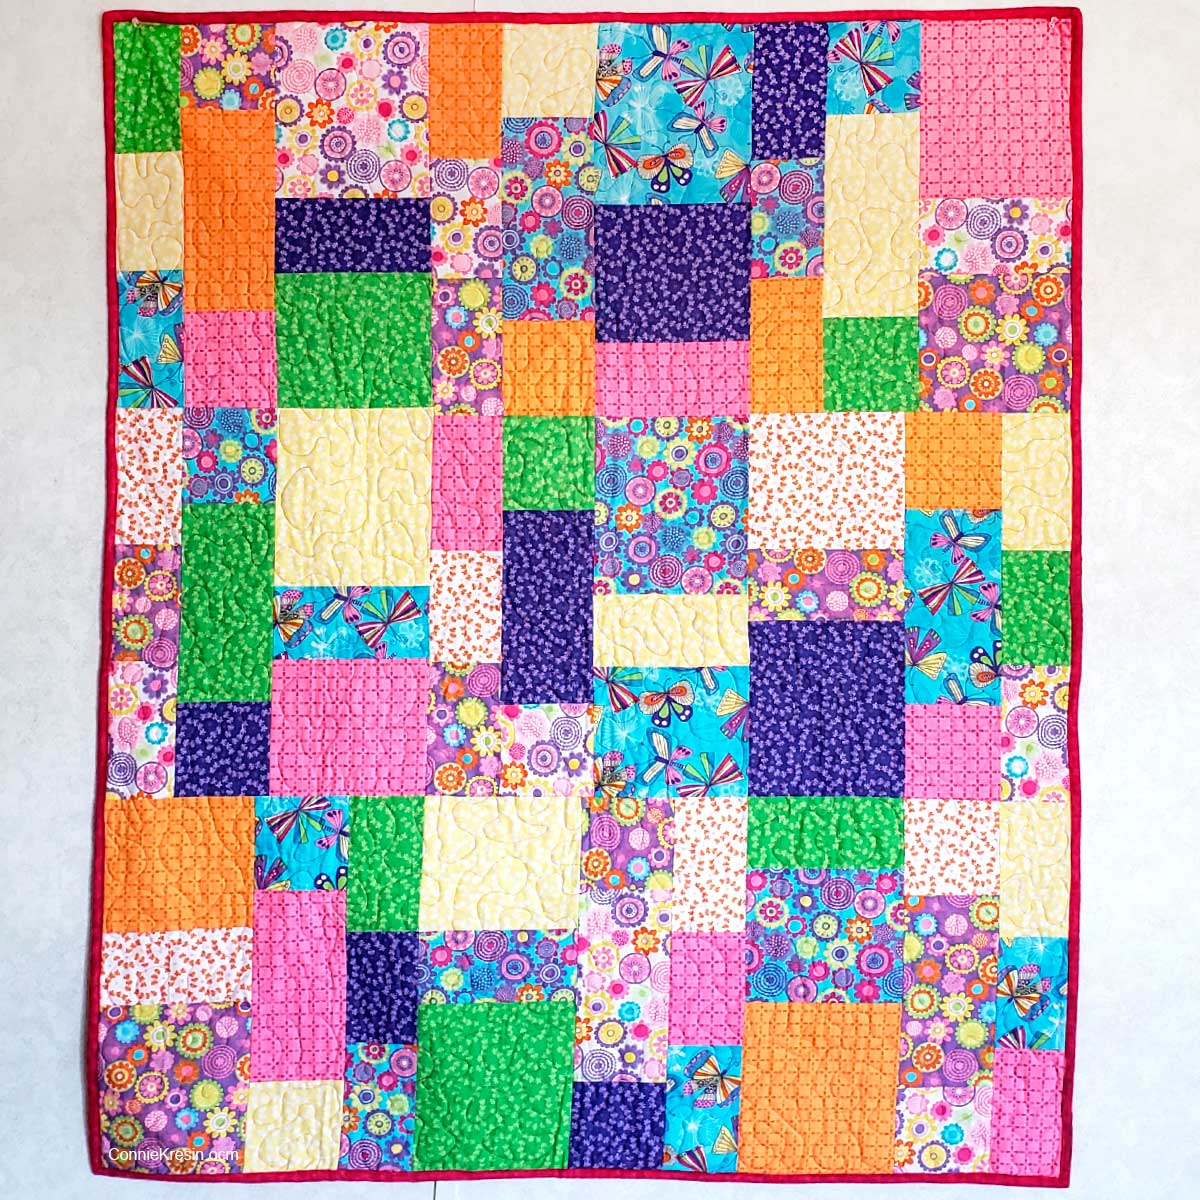 Stacks quilt pattern made with rainbow quilt fabrics for children